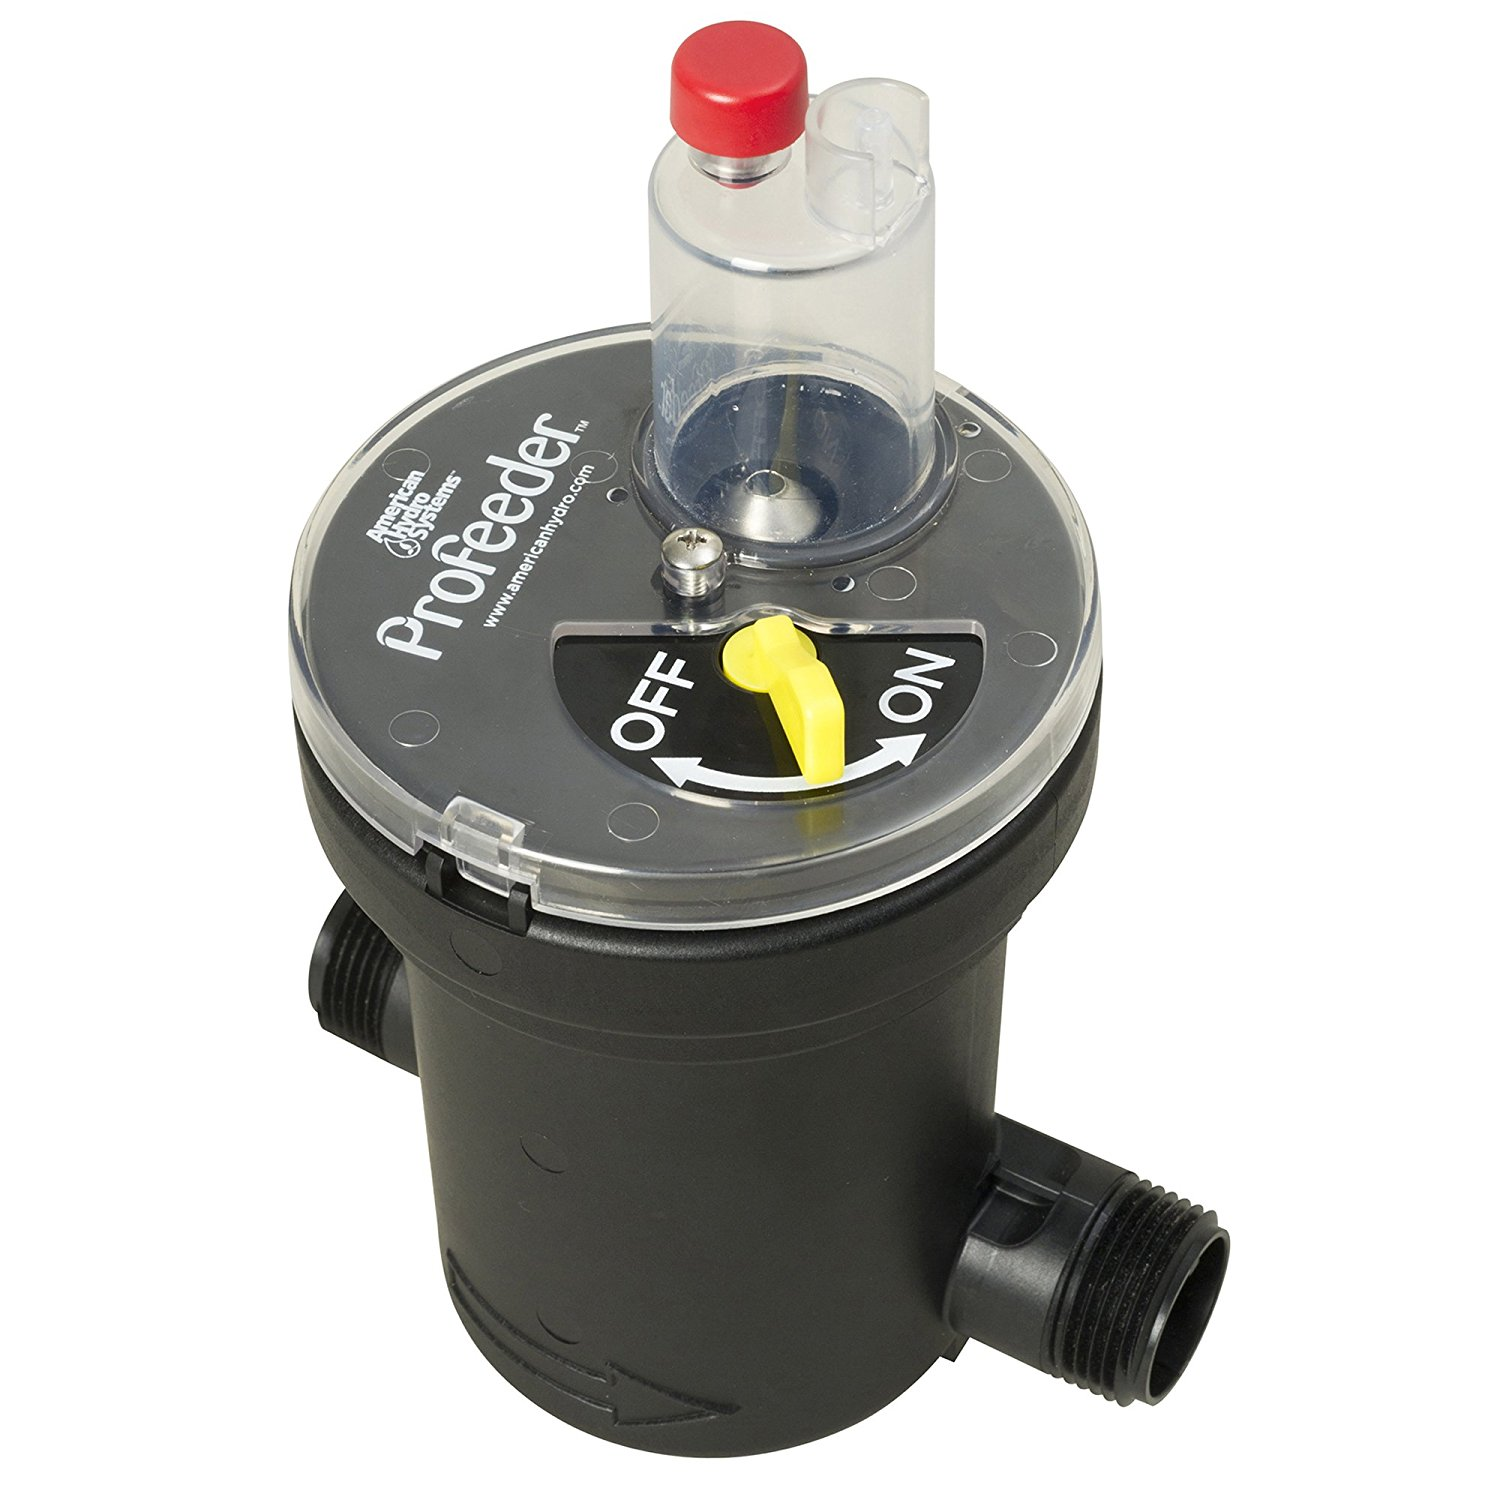 American Hydro Systems P1X Green Feeder Non-Electric Auto Proportional Feeder for Irrigation Systems